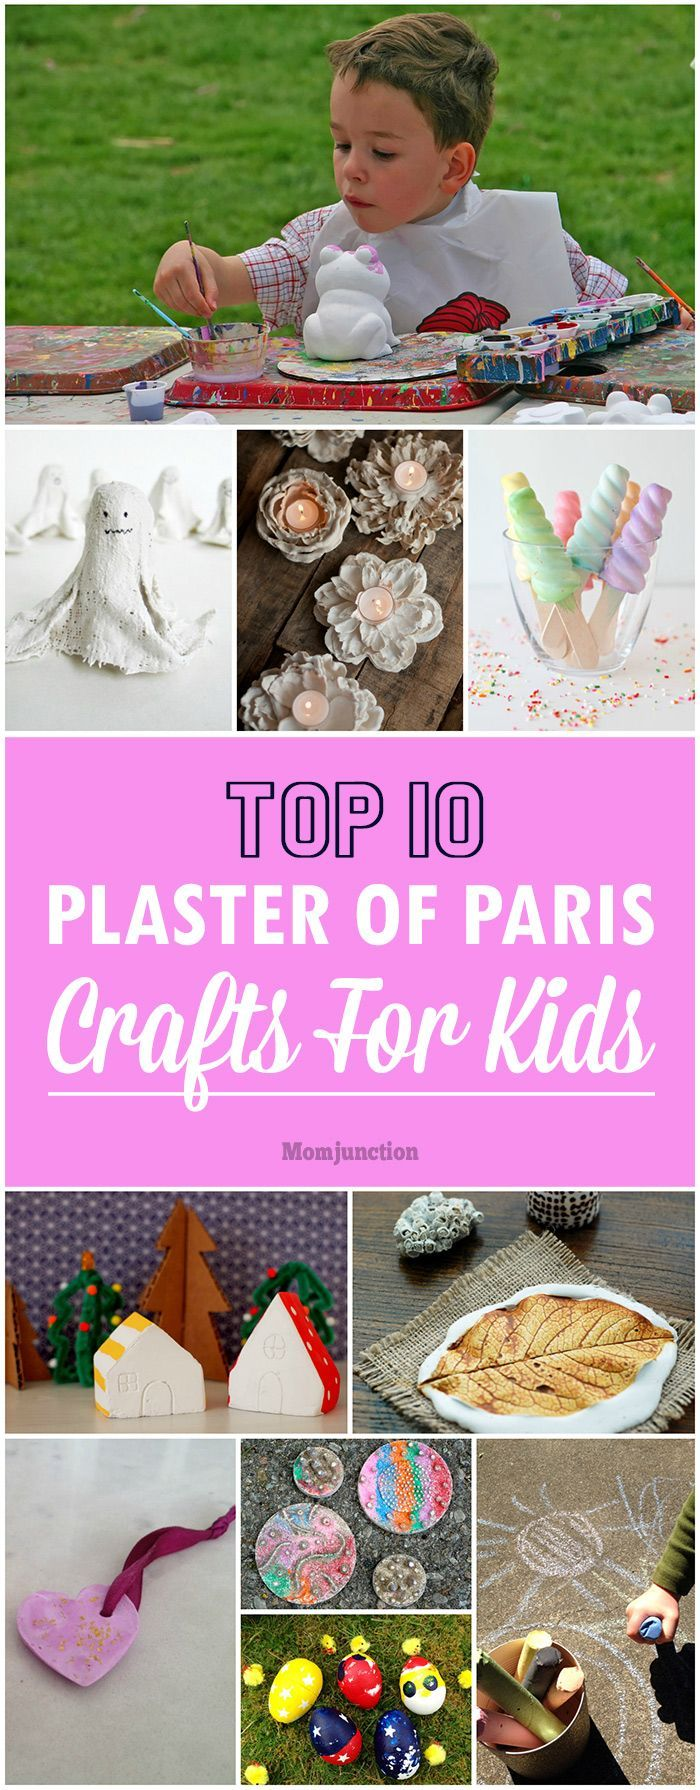 Top 10 Plaster Of Paris Crafts For Kids: here are ten craft that kids can try making with Plaster of Paris.